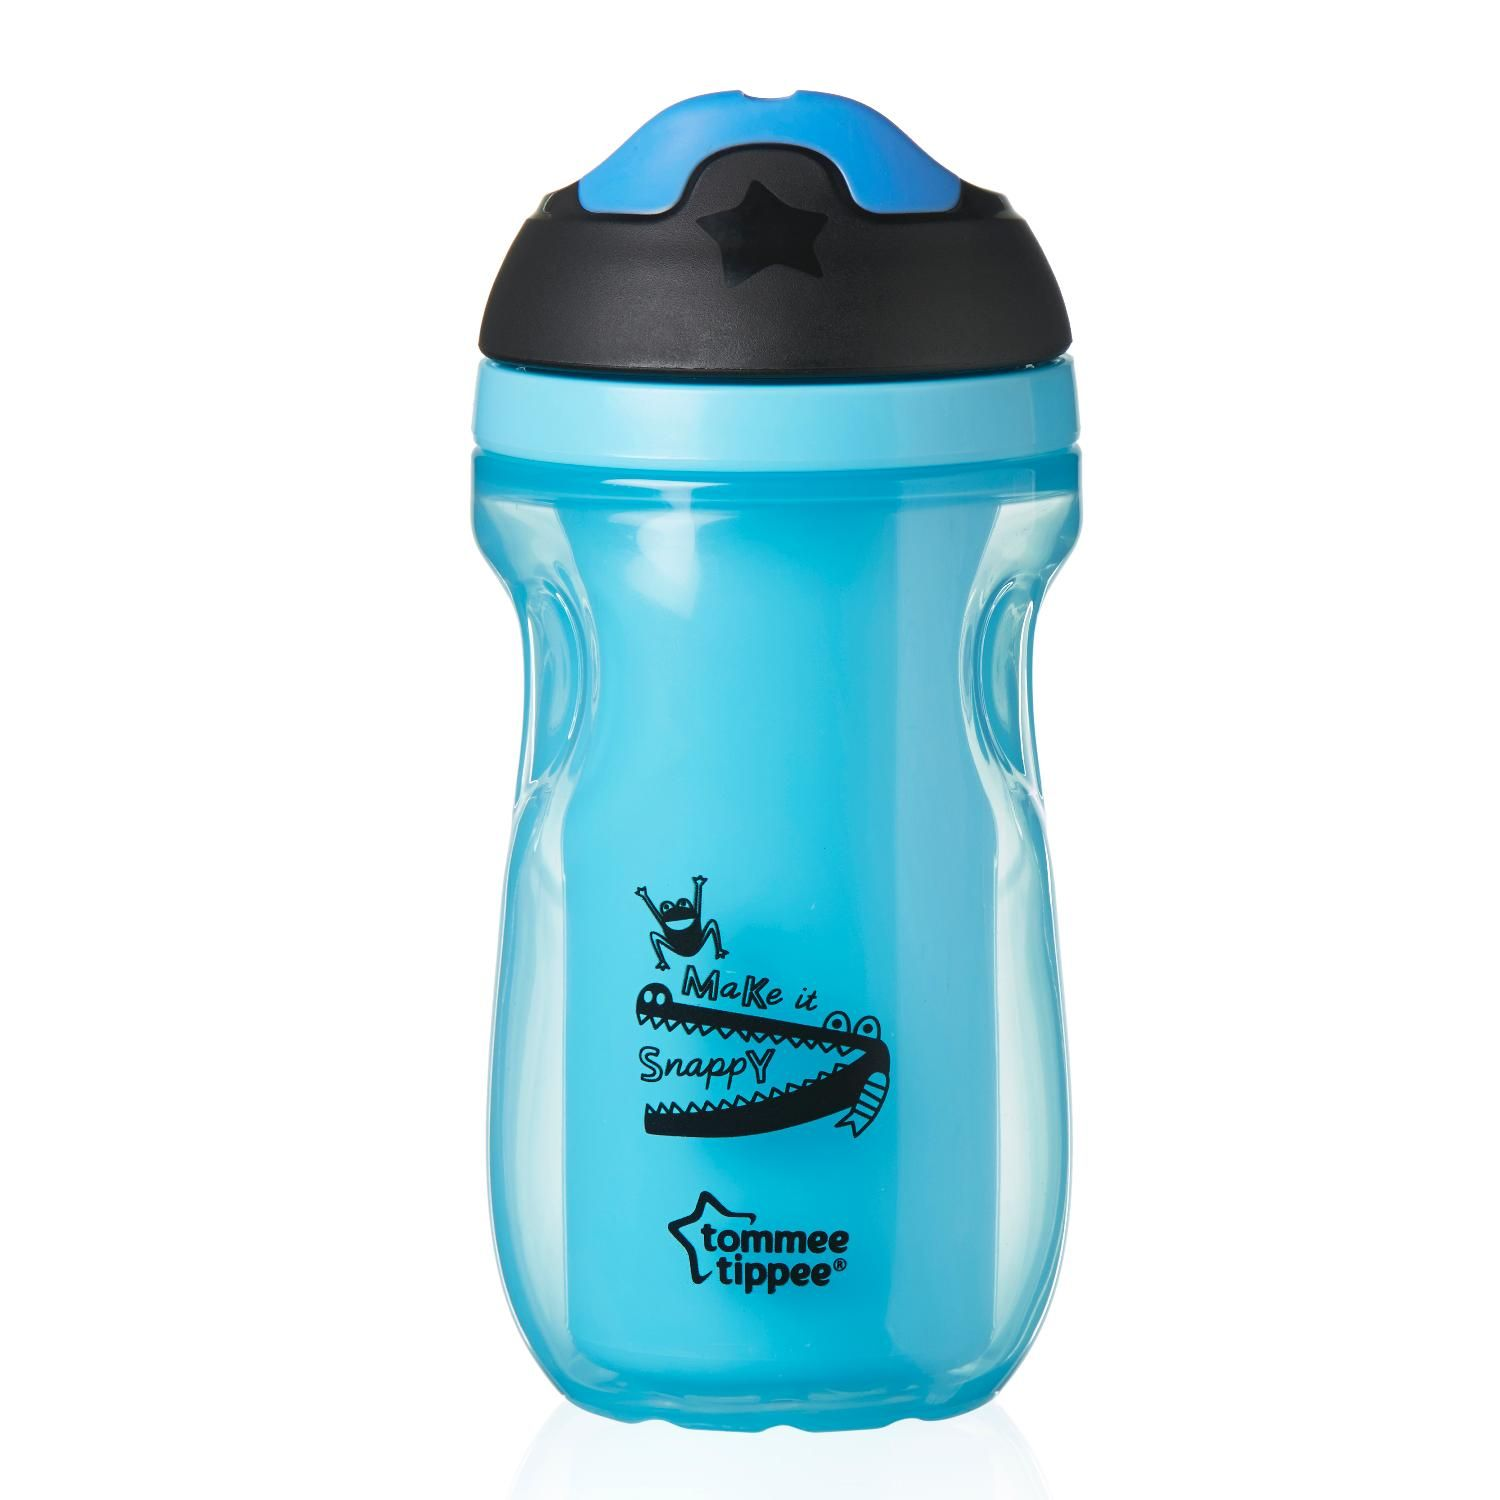 Tommee Tippee Insulated Sipper in Blue | Things we have in the ...